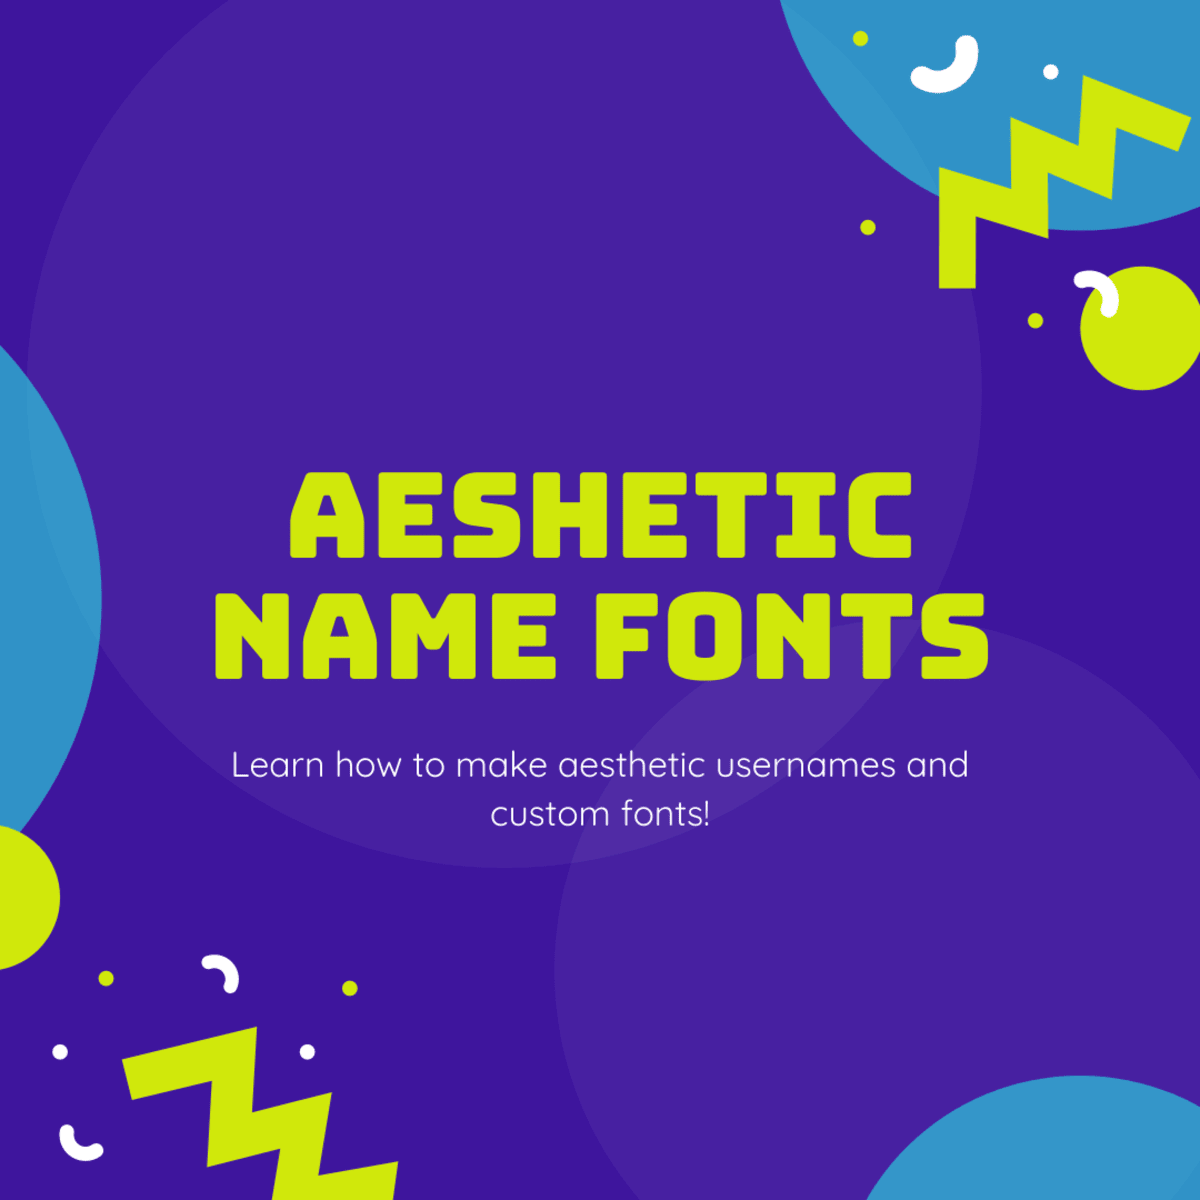 How To Create A Discord Name Font The Ultimate Guide Turbofuture Add your names, share with friends. how to create a discord name font the